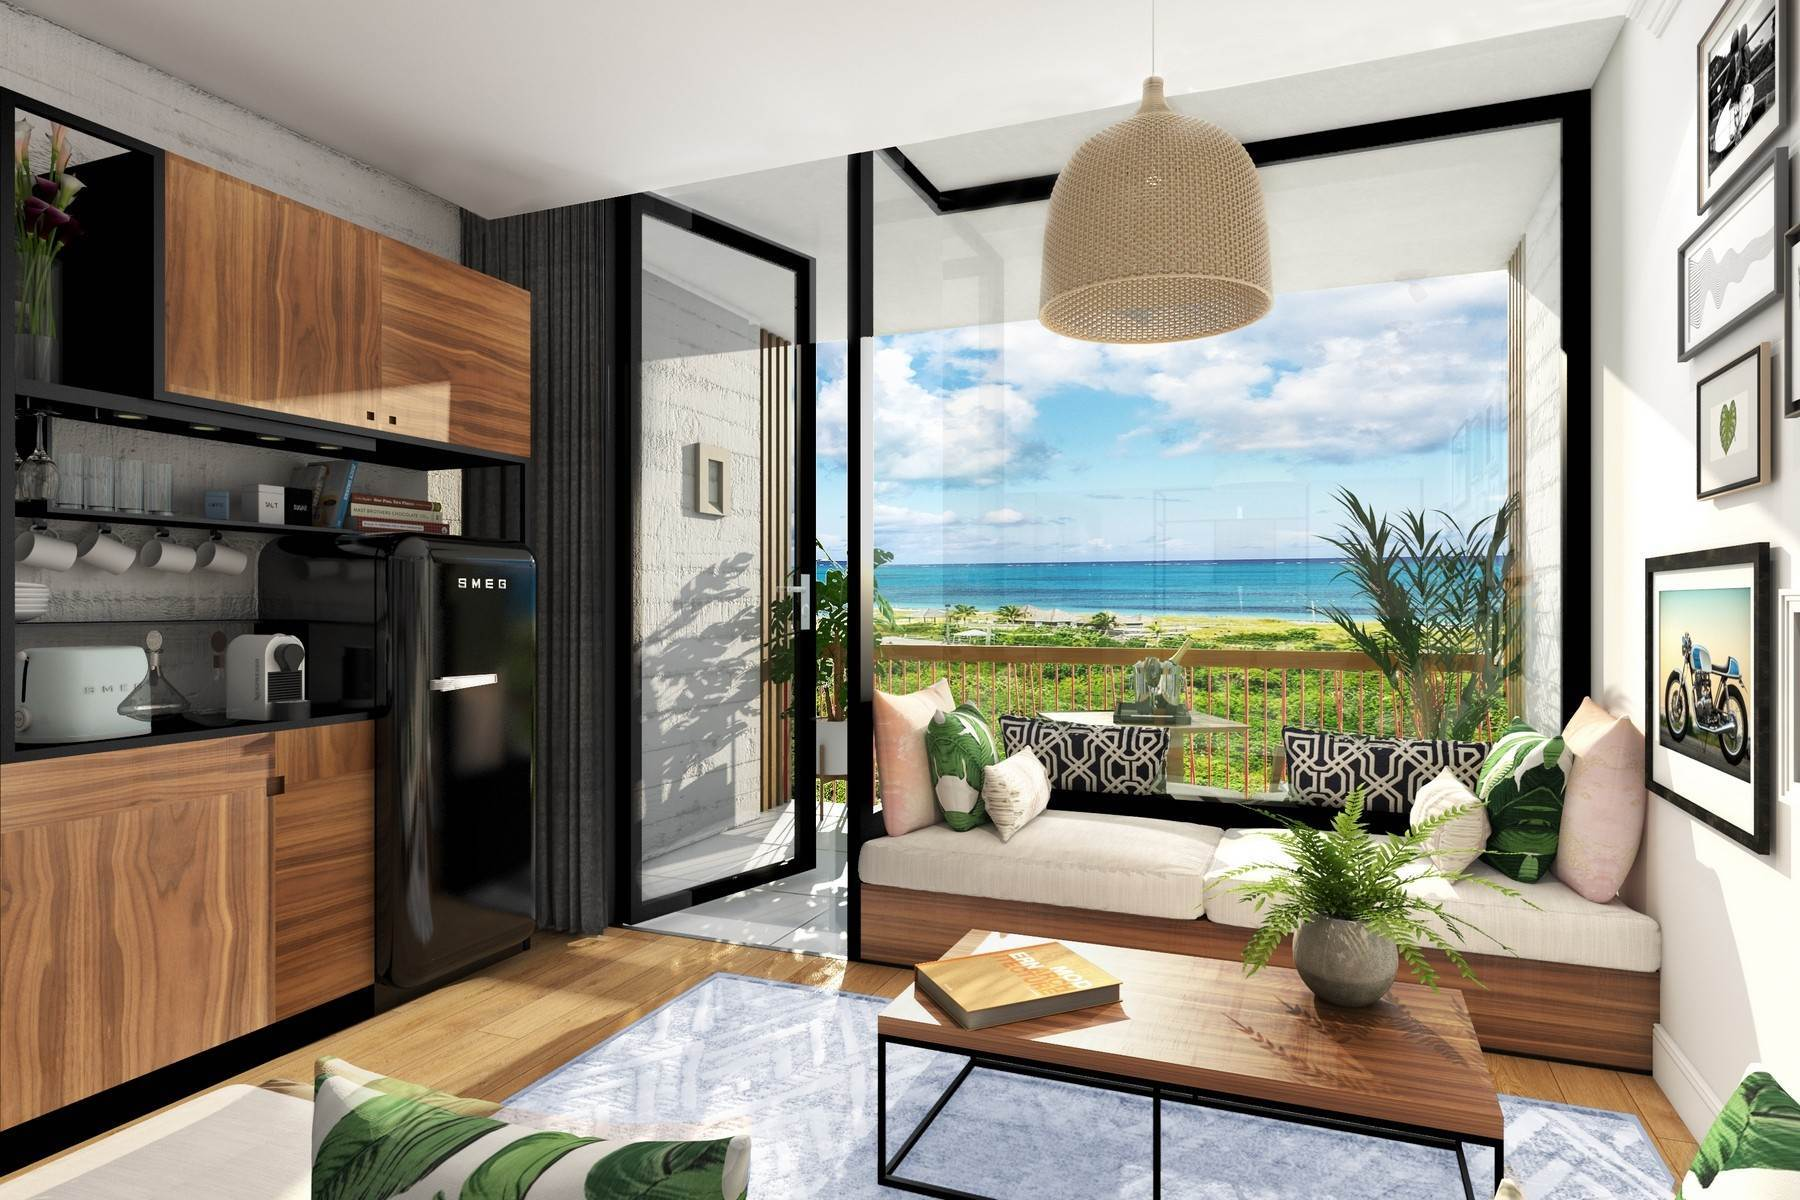 2. Condominiums for Sale at The Bight, Providenciales Turks And Caicos Islands